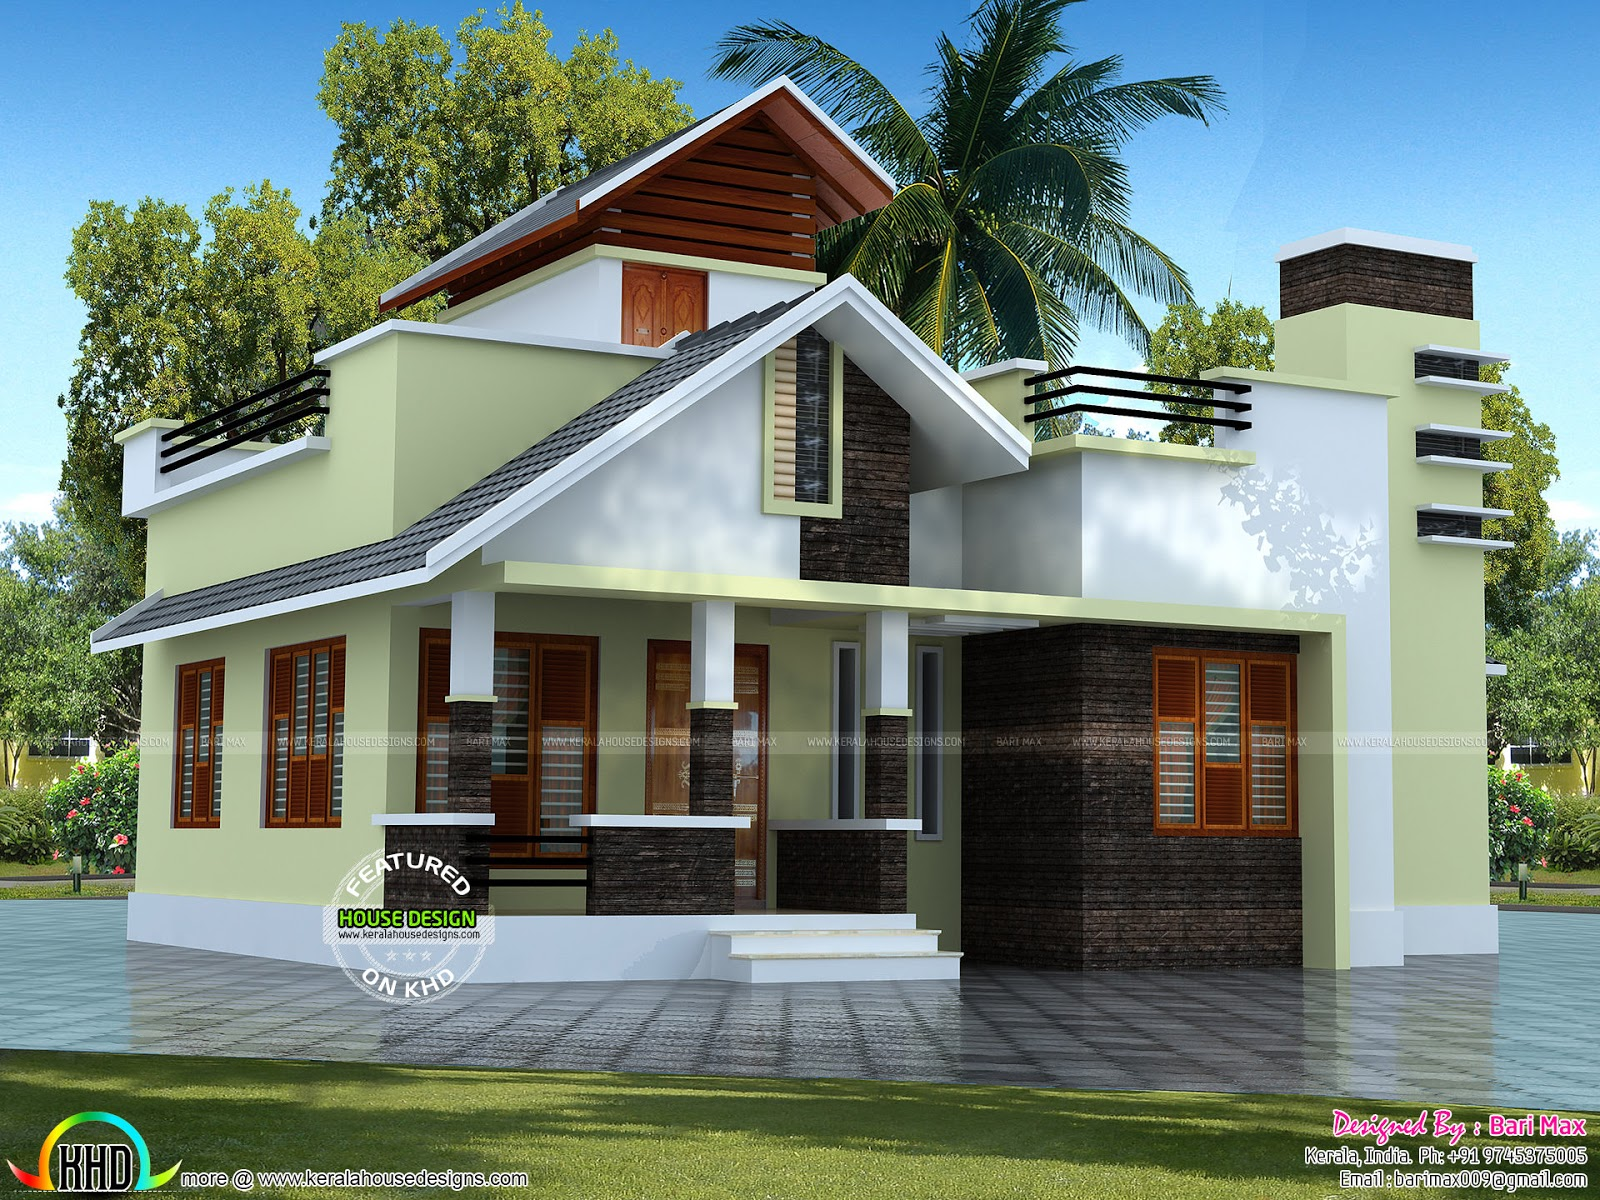 Low cost single floor home 1050 sq ft kerala home design for Low cost per square foot house plans